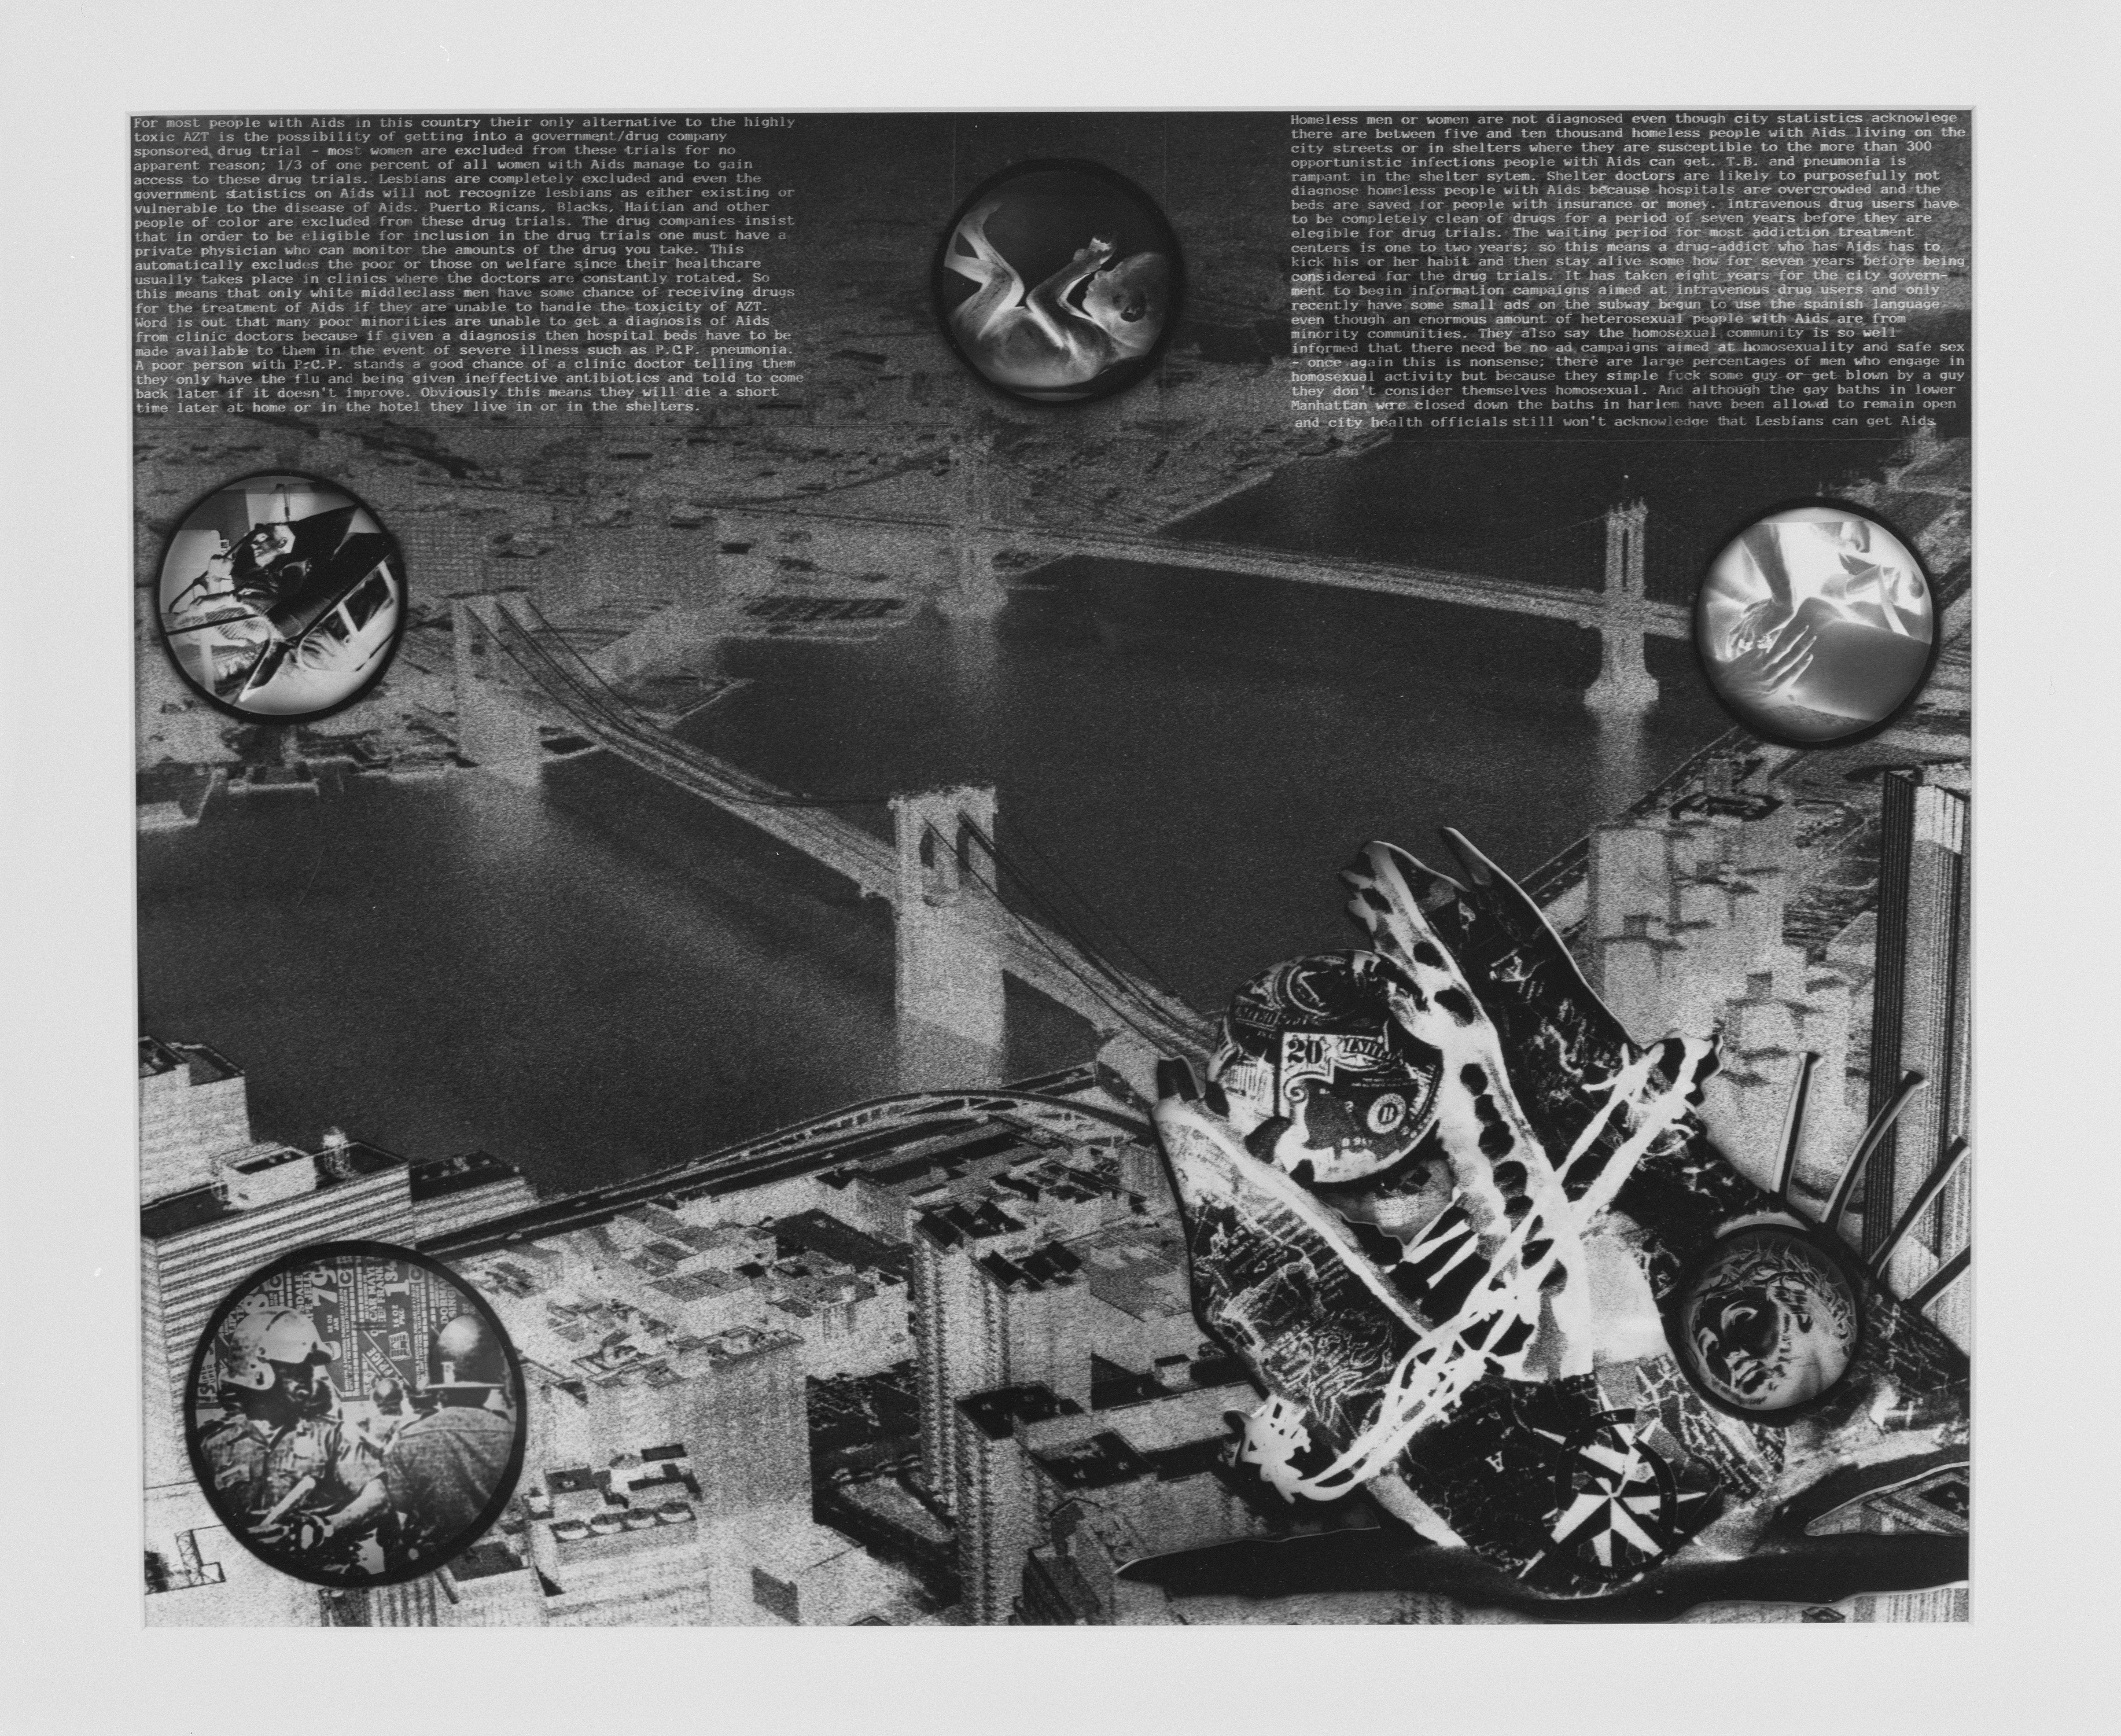 All's Fair in Love and War: David Wojnarowicz, ART+Positive and AIDS Activism Then and Now